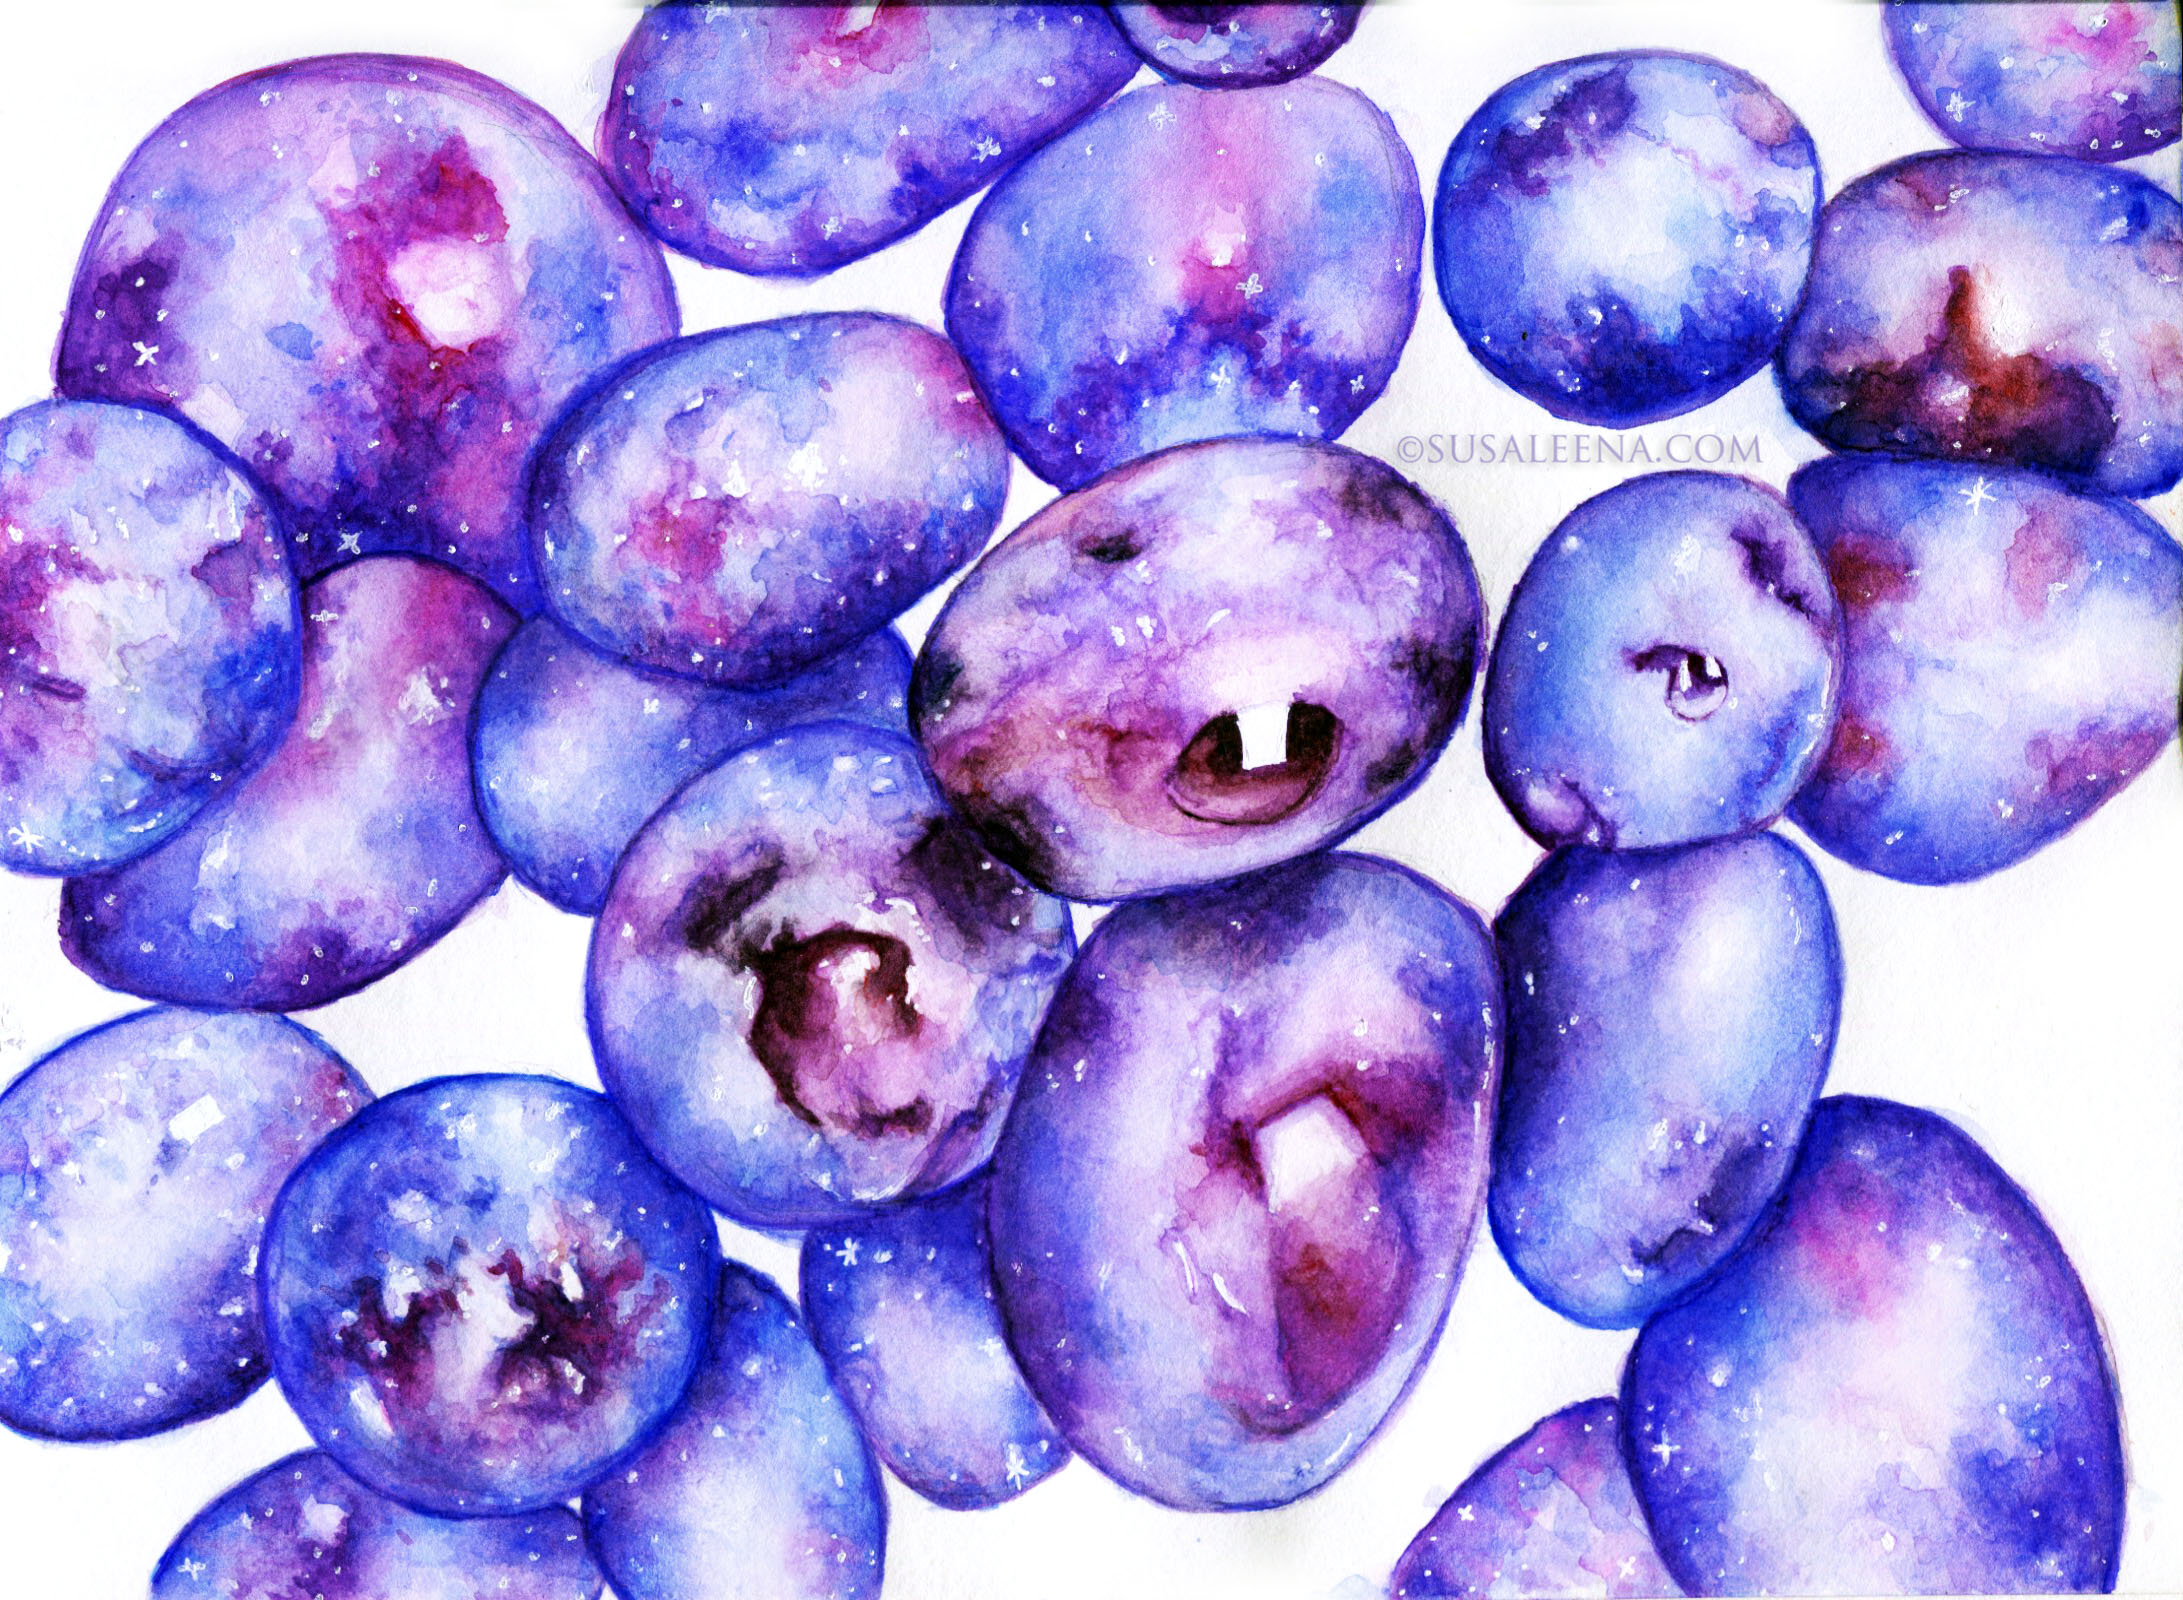 Galaxy Fruit